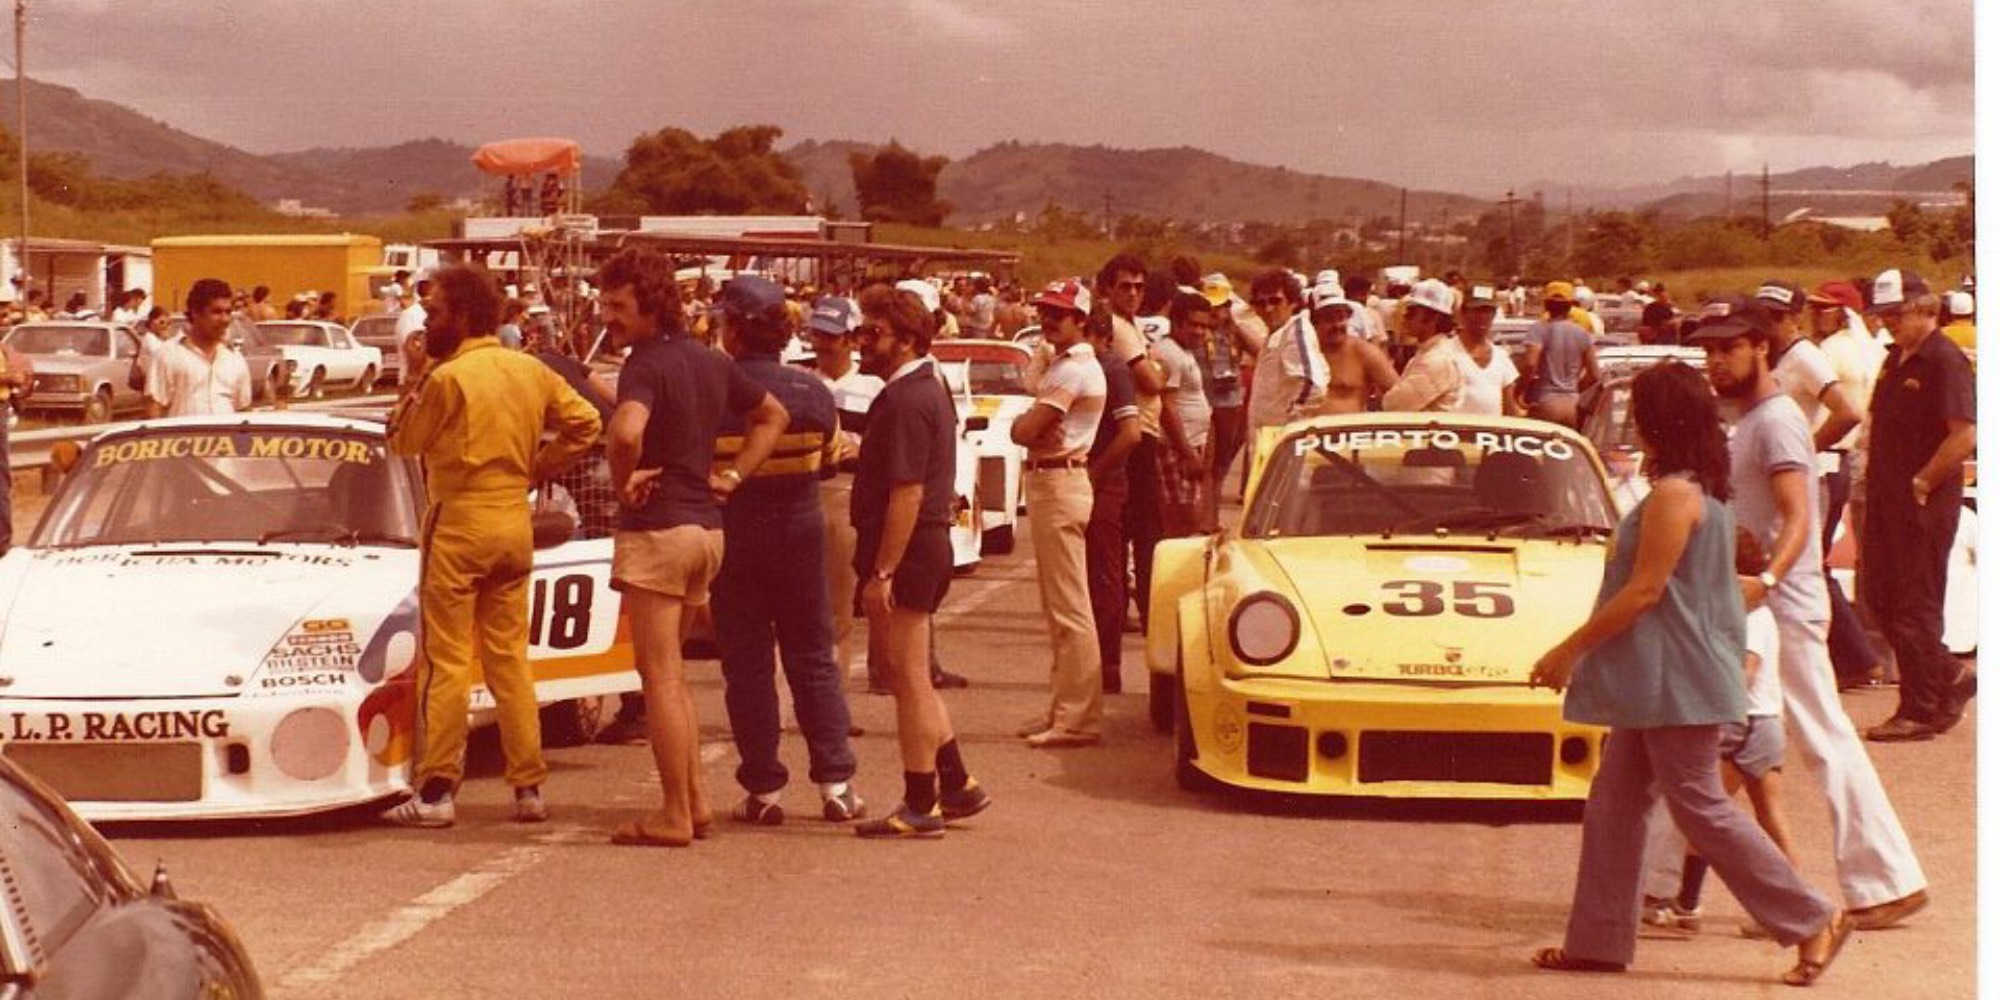 The Ex – Le Mans 24 Hours, Daytona 24 Hours, Multiple Sebring 12 Hours 1976 Porsche 934 Turbo RSR